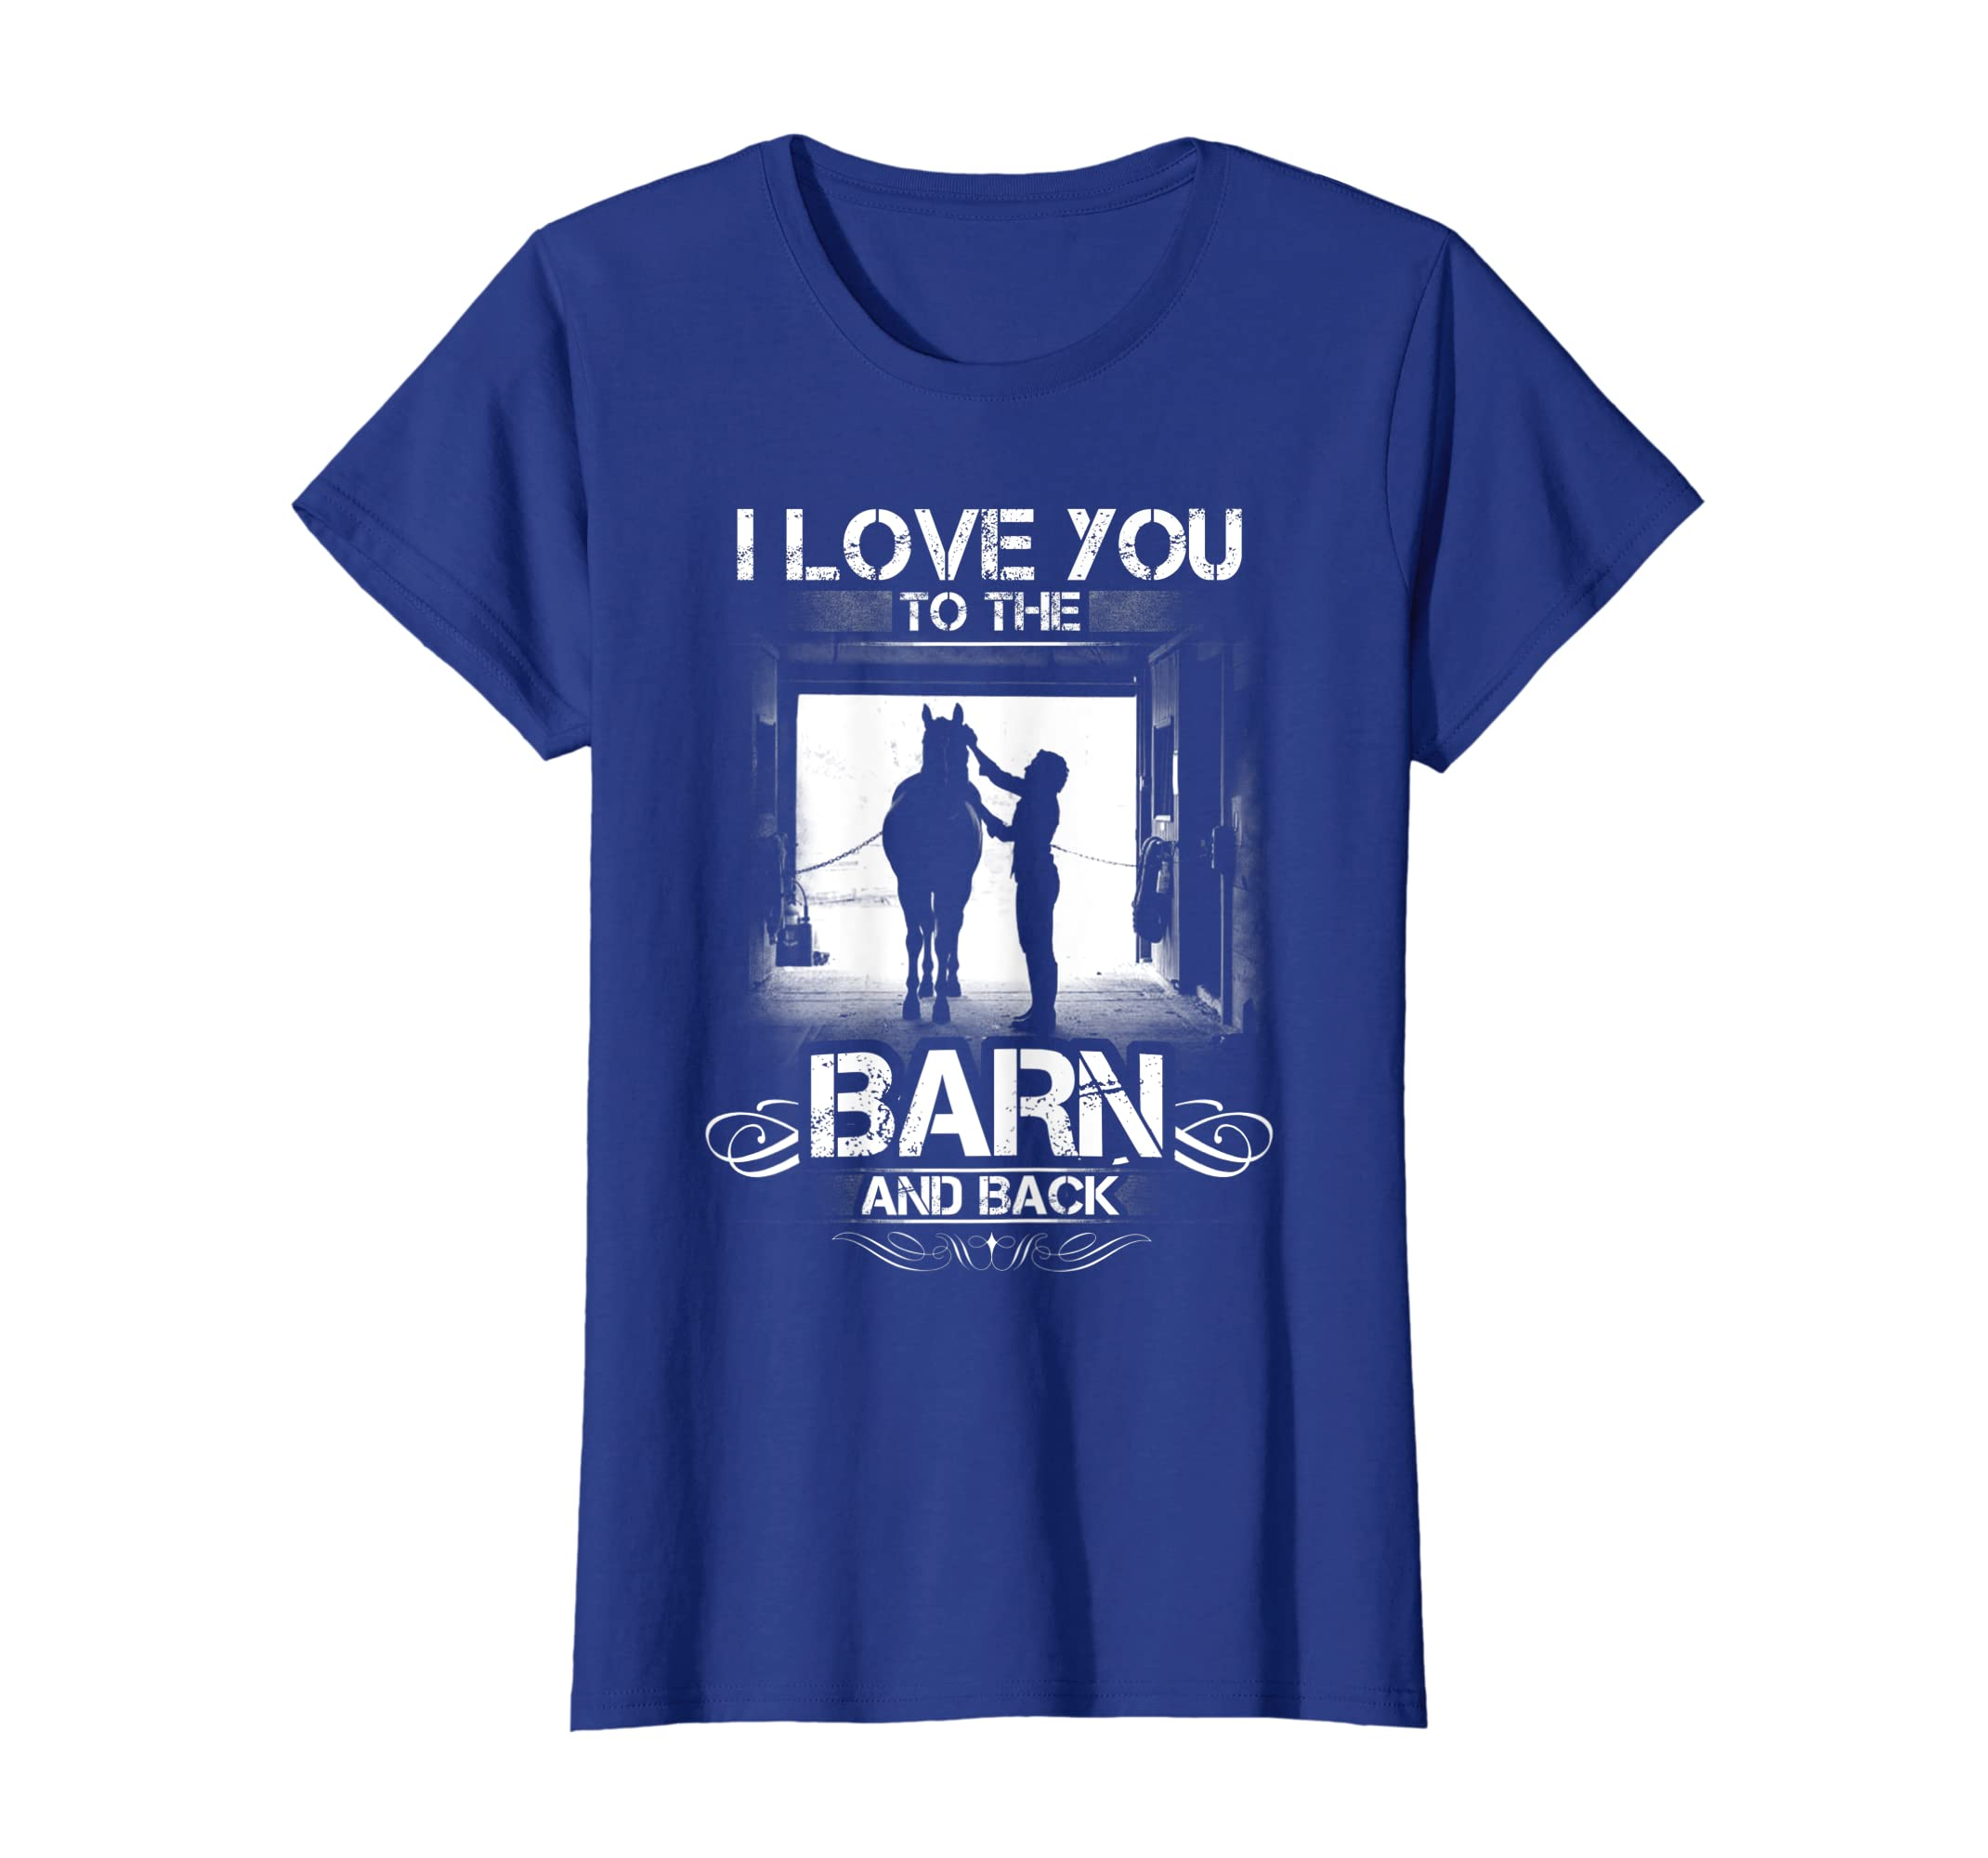 Amazon.com  I love you to the barn and back - horse lover t-shirt  Clothing f44da3a607904